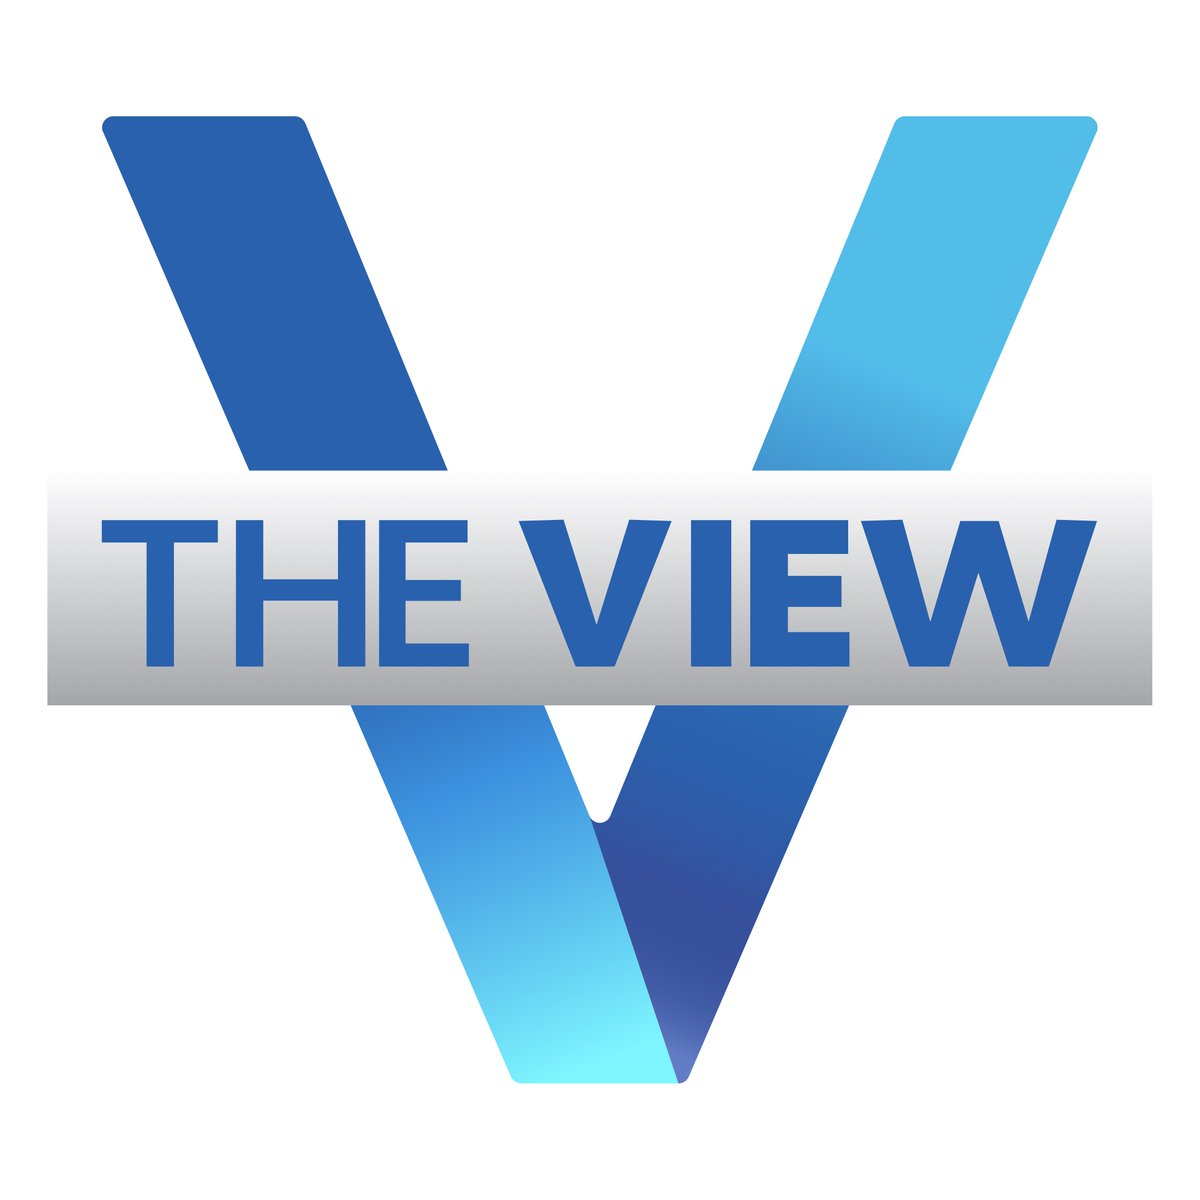 Next Week on @TheView: @WendyWilliams, @KeeganMKey, @kyrasedgwick, @bevysmith, Hot Topics and More. #TheView Jan. 25-29 https://t.co/RpXnsgXCyd https://t.co/ulgzYOeX52